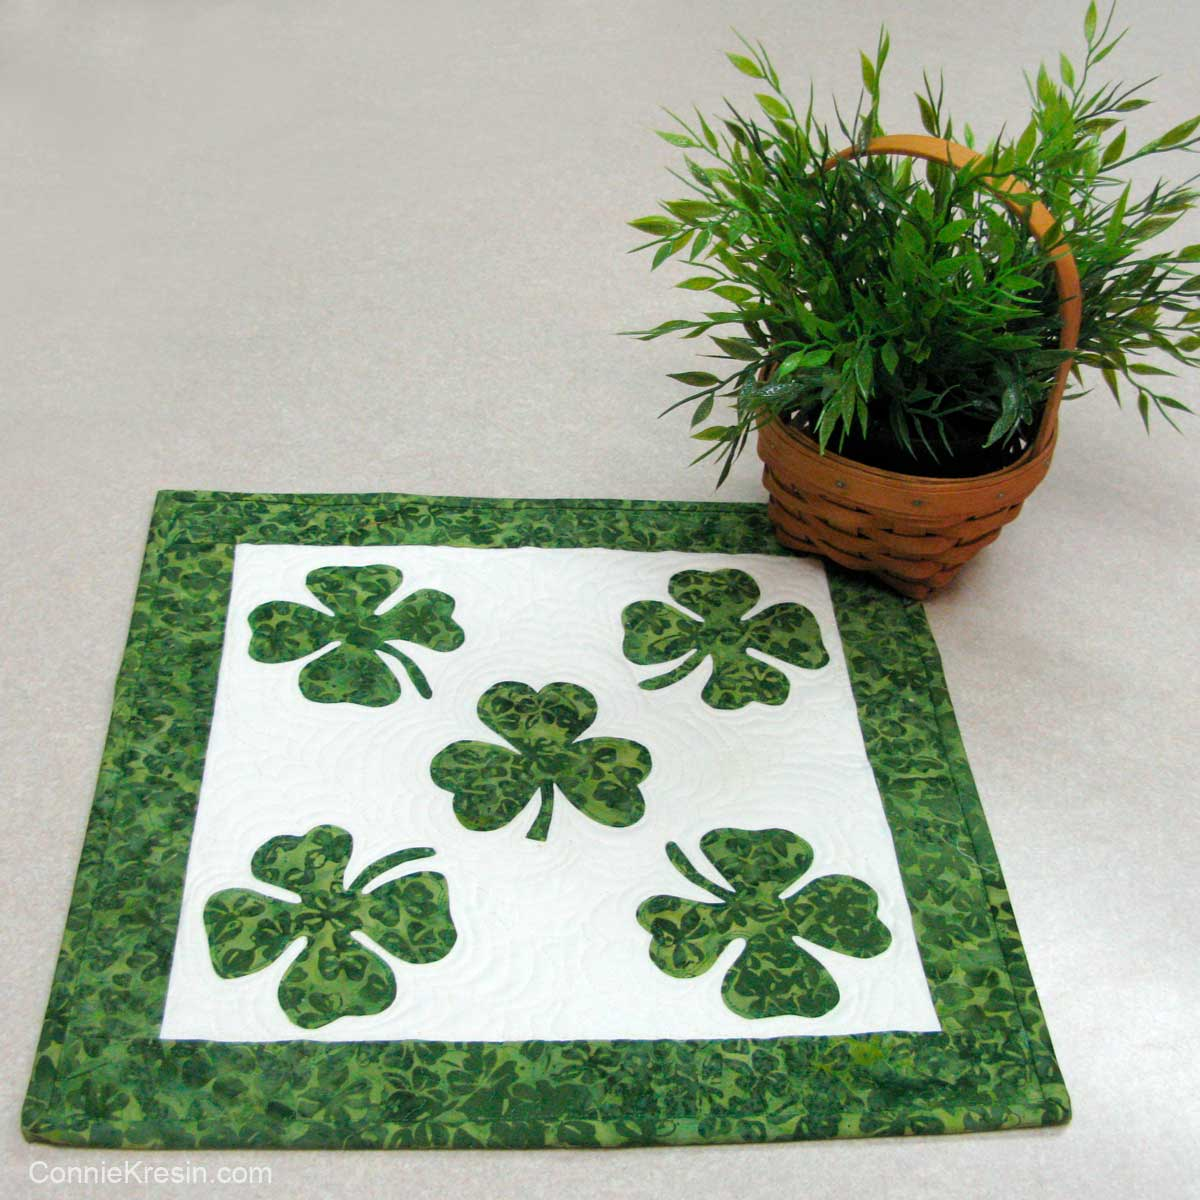 Shamrock table topper perfect for St. Patrick's Day